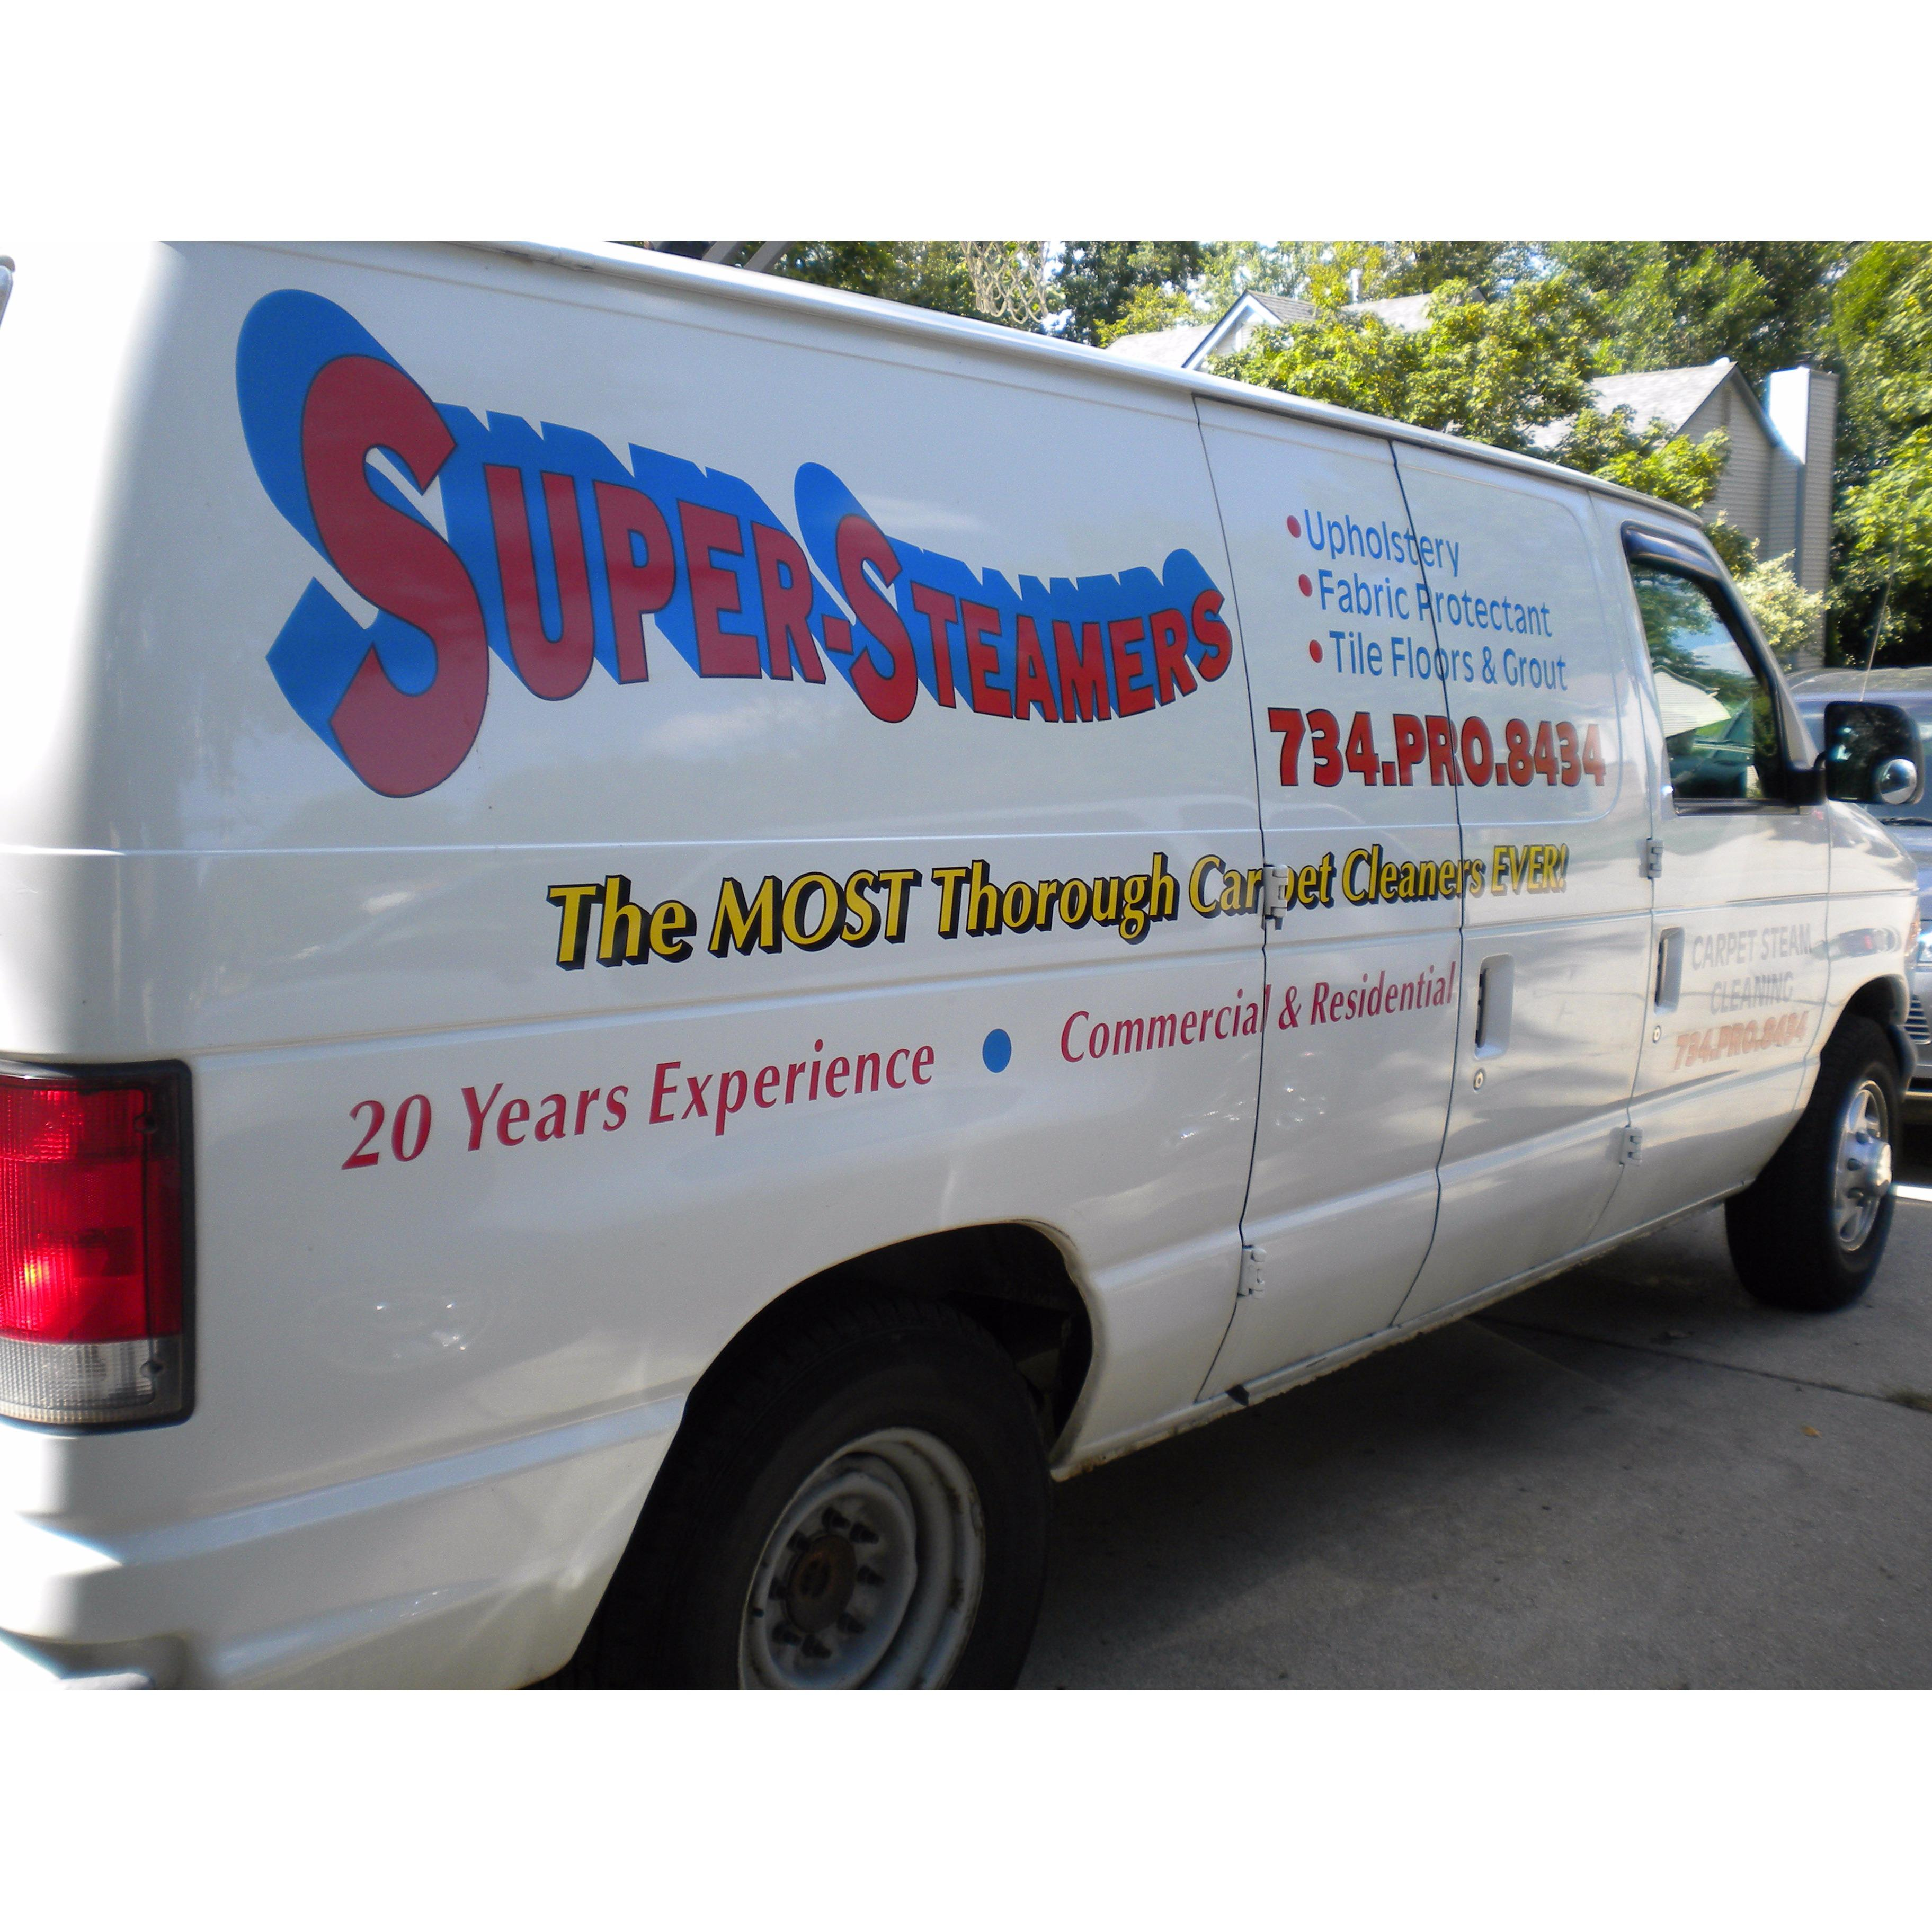 Super Steamers Carpet Cleaners